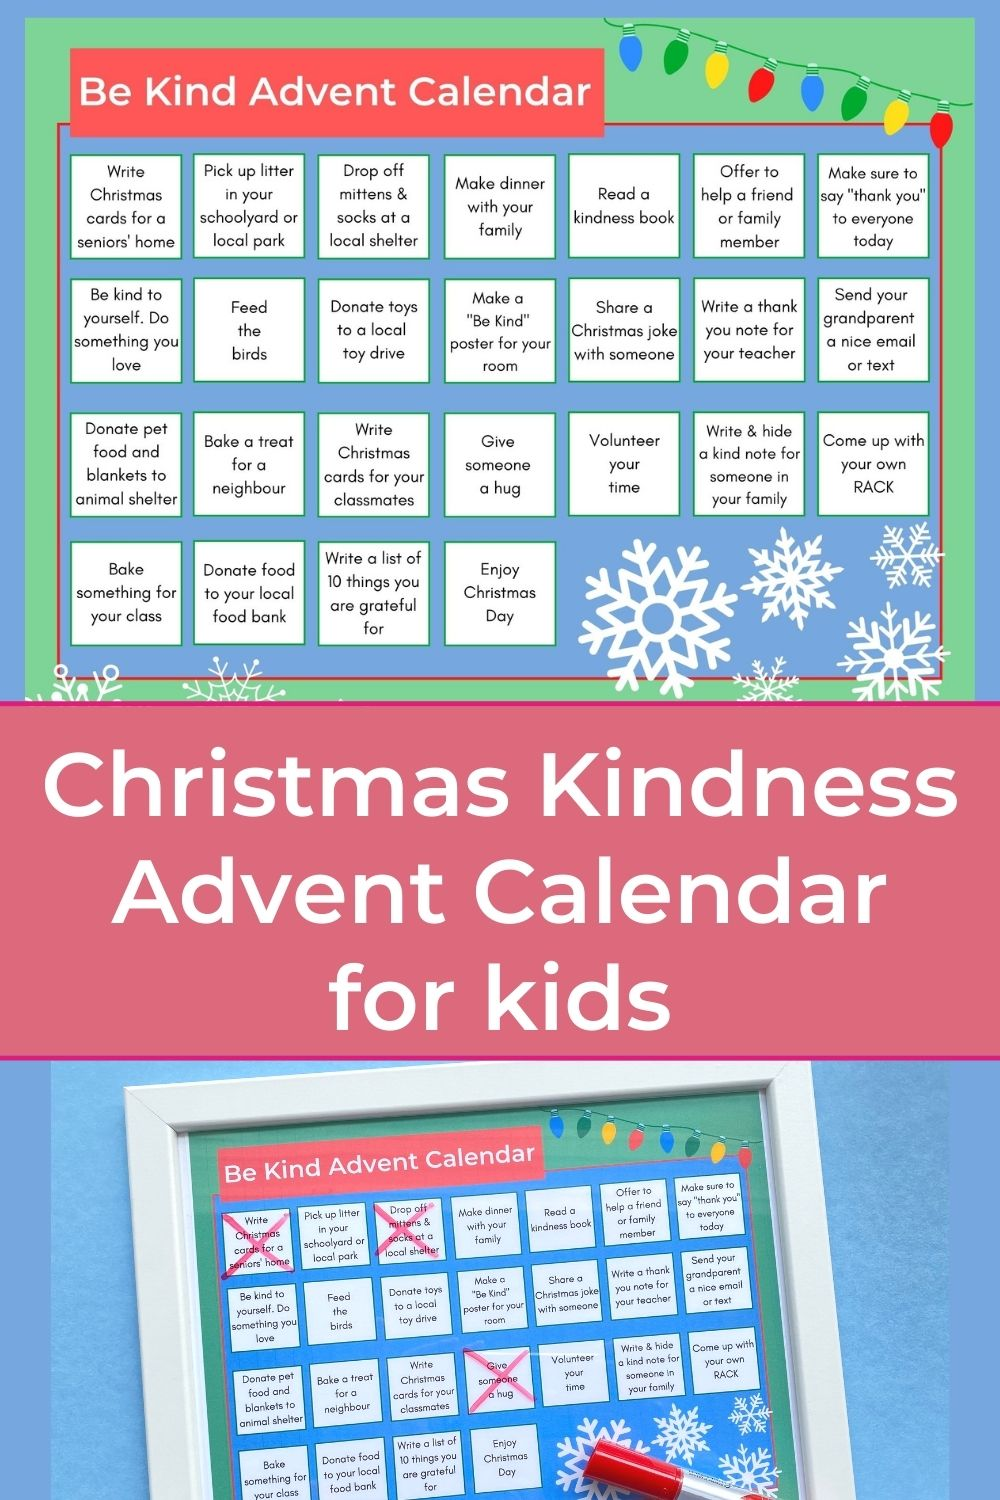 printable be kind advent calendar for kids with title and printed advent calendar